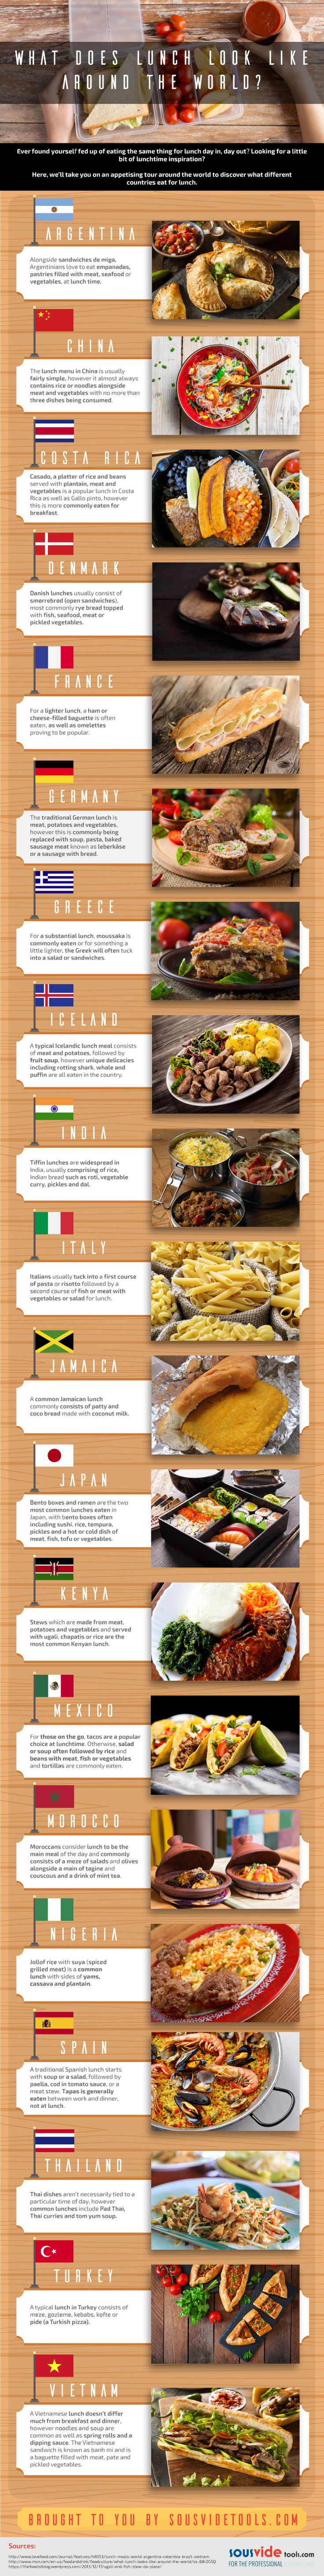 What Does Lunch Look Like Around The World? Re-pinned by #Europass